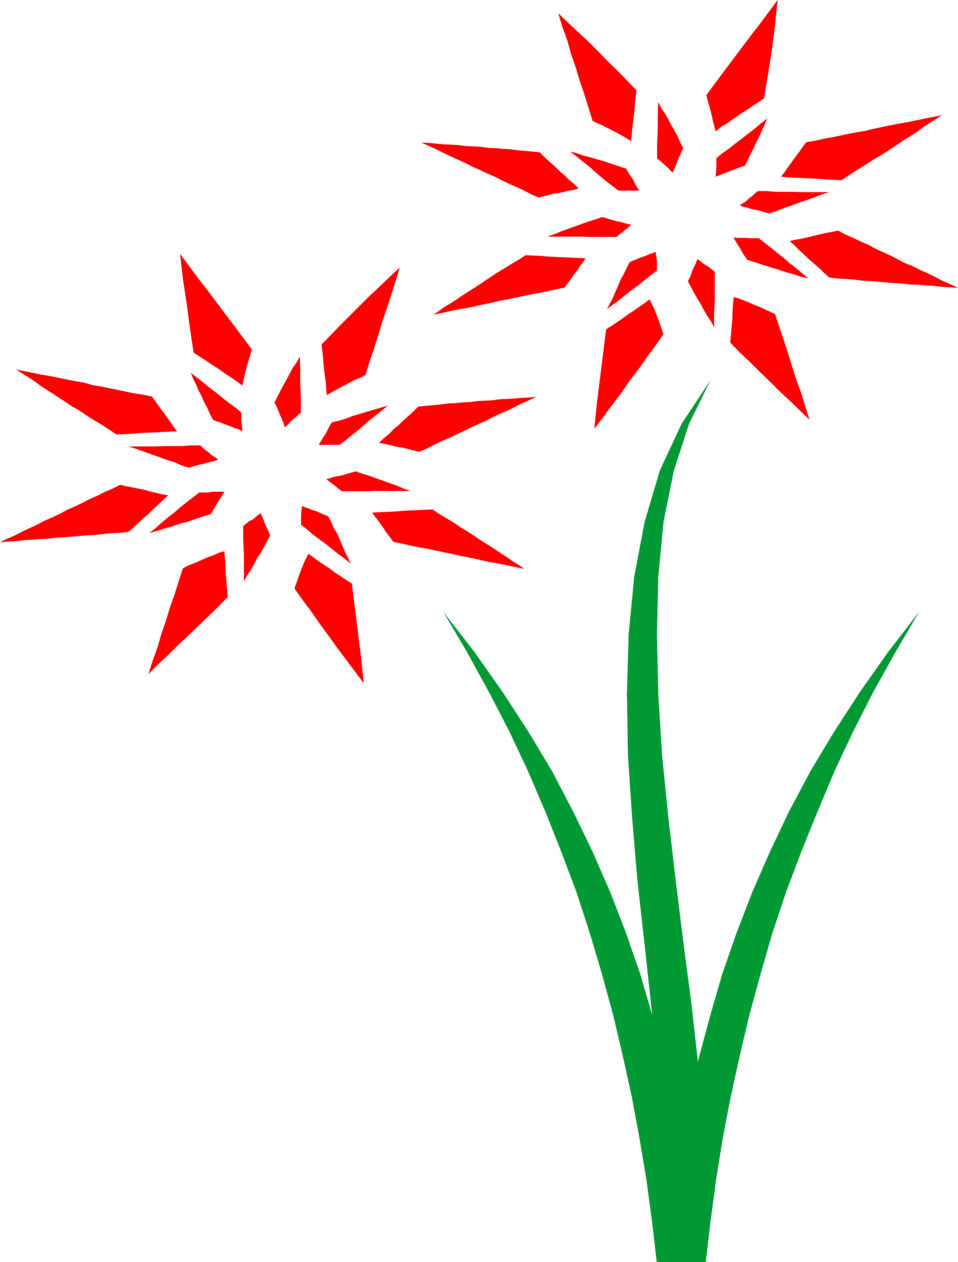 flower clipart with transparent background - photo #35